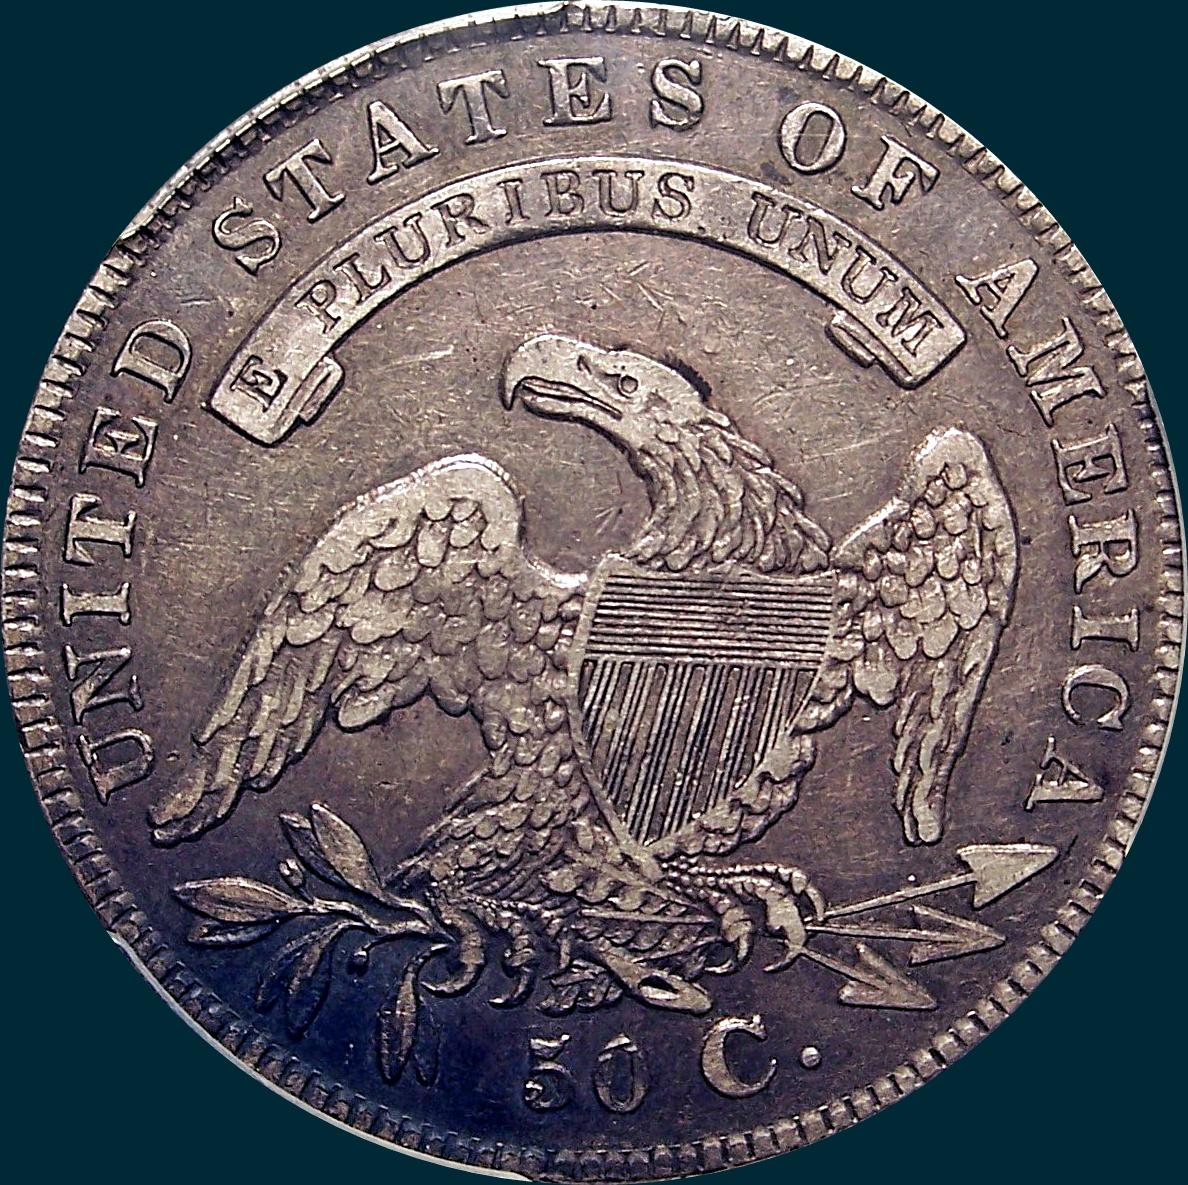 1836/1336 O-108, capped bust half dollar